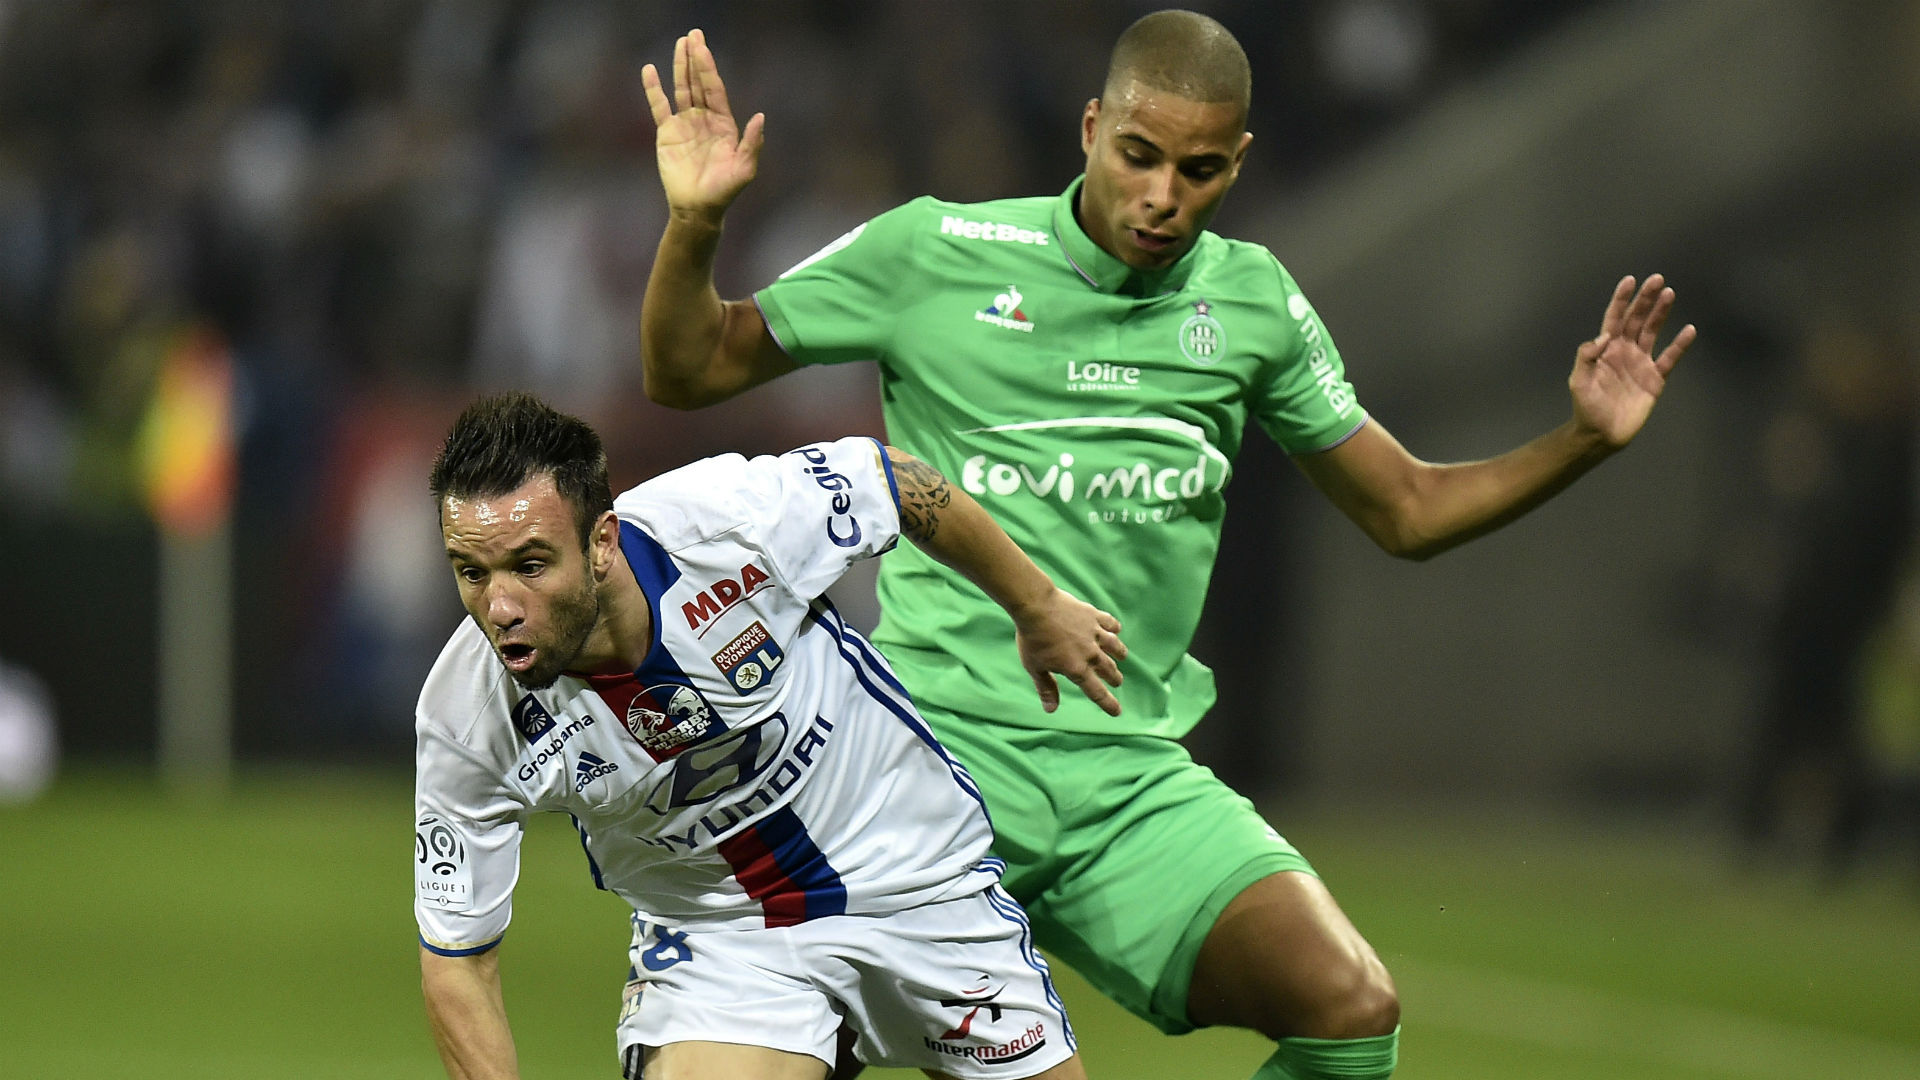 Kevin Monnet-Paquet Mathieu Valbuena Lyon AS Saint-Etienne Ligue 1 02102016